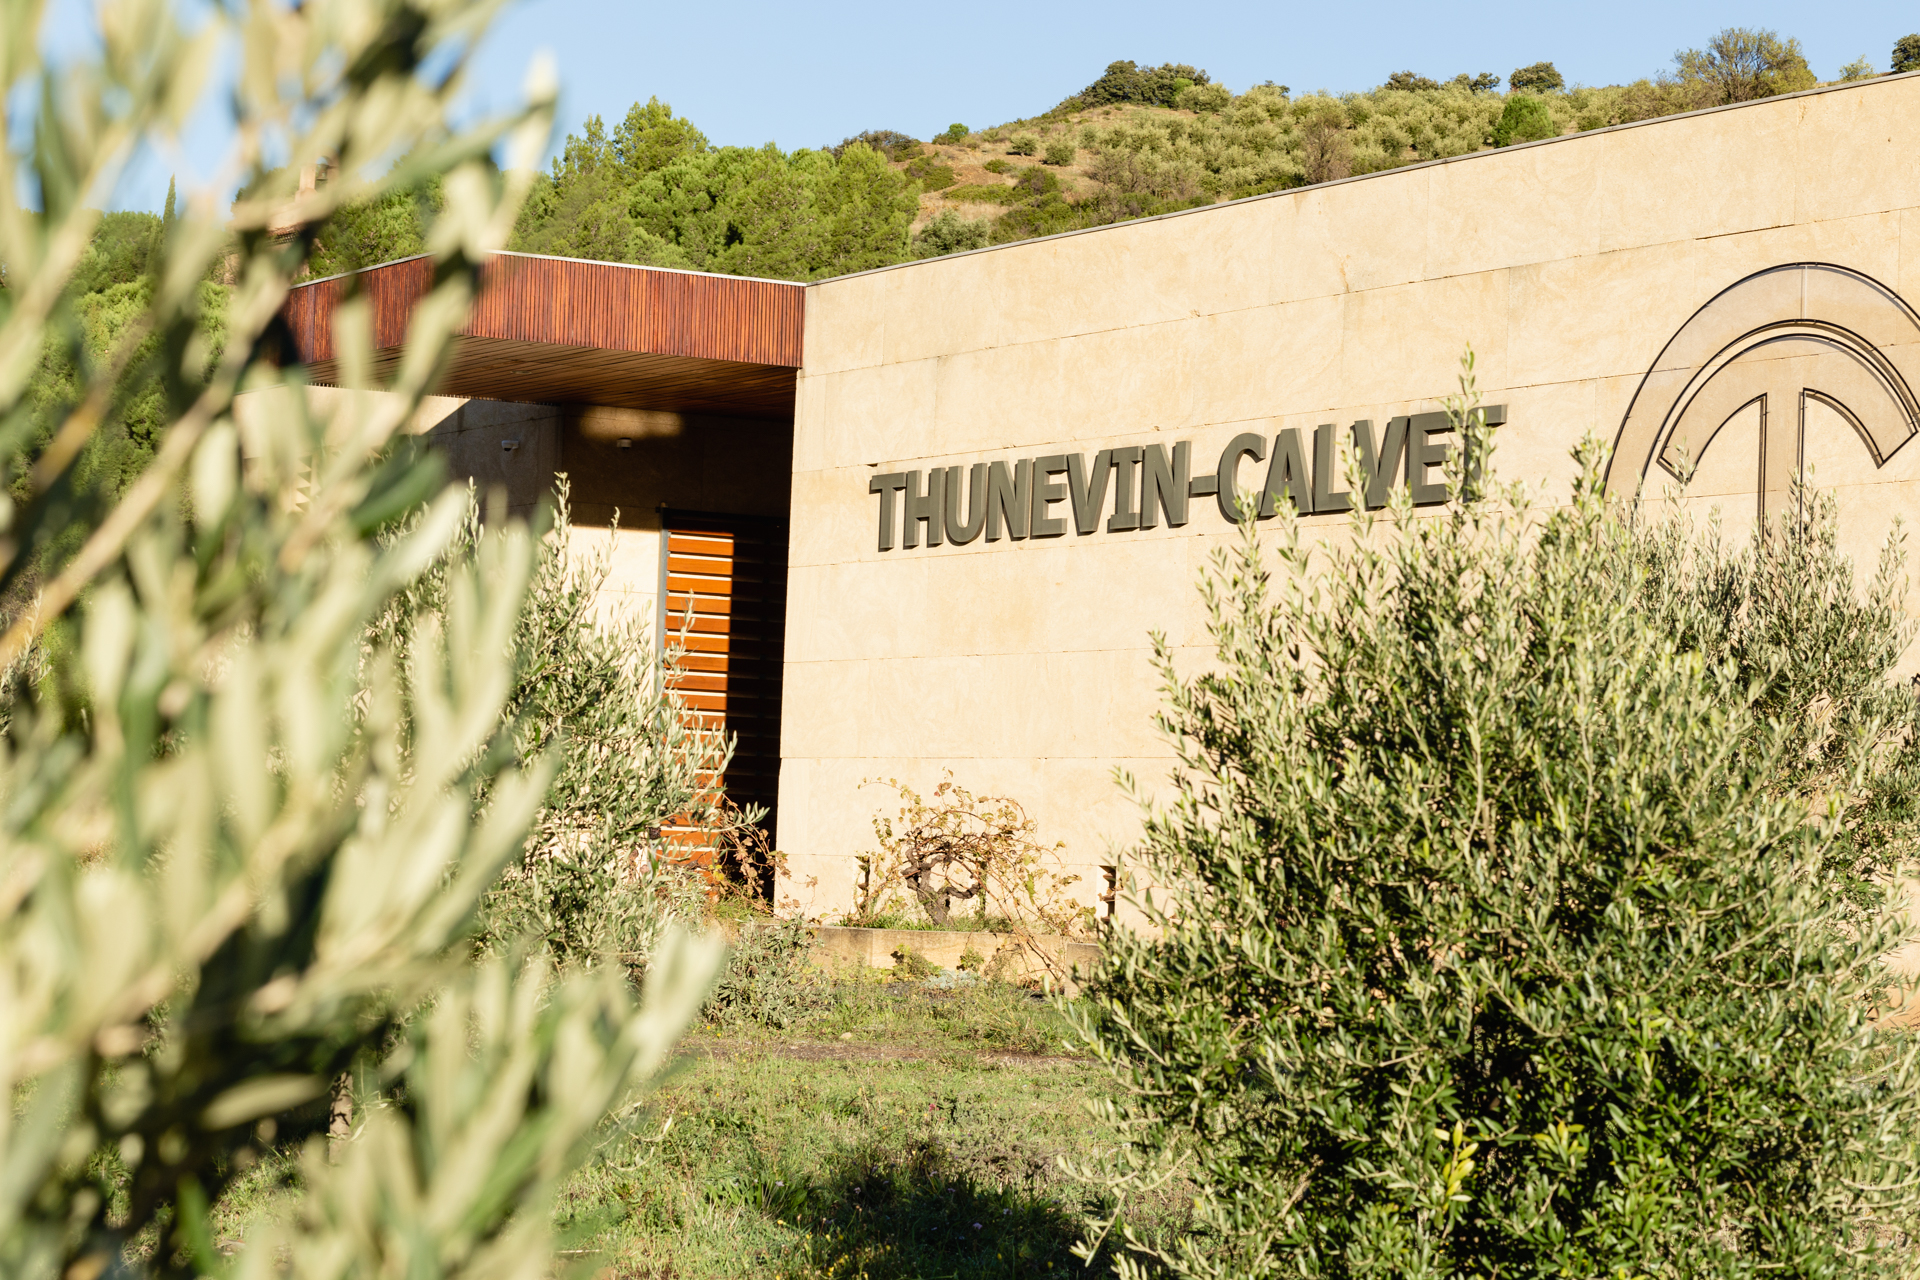 thunevin calvet gallerie domaine photo 4